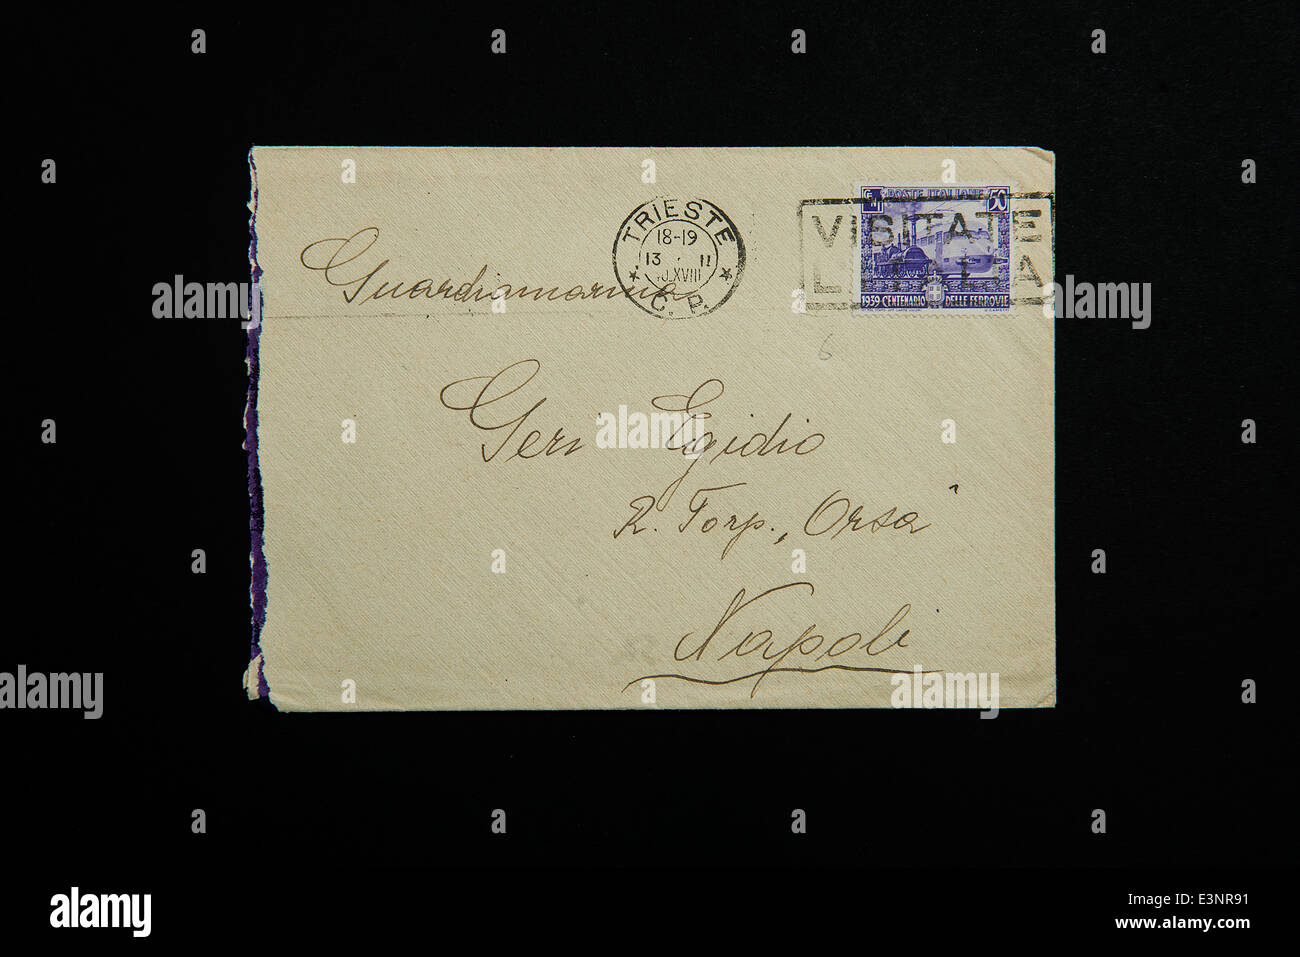 Old Italian stamps in an envelope - Stock Image